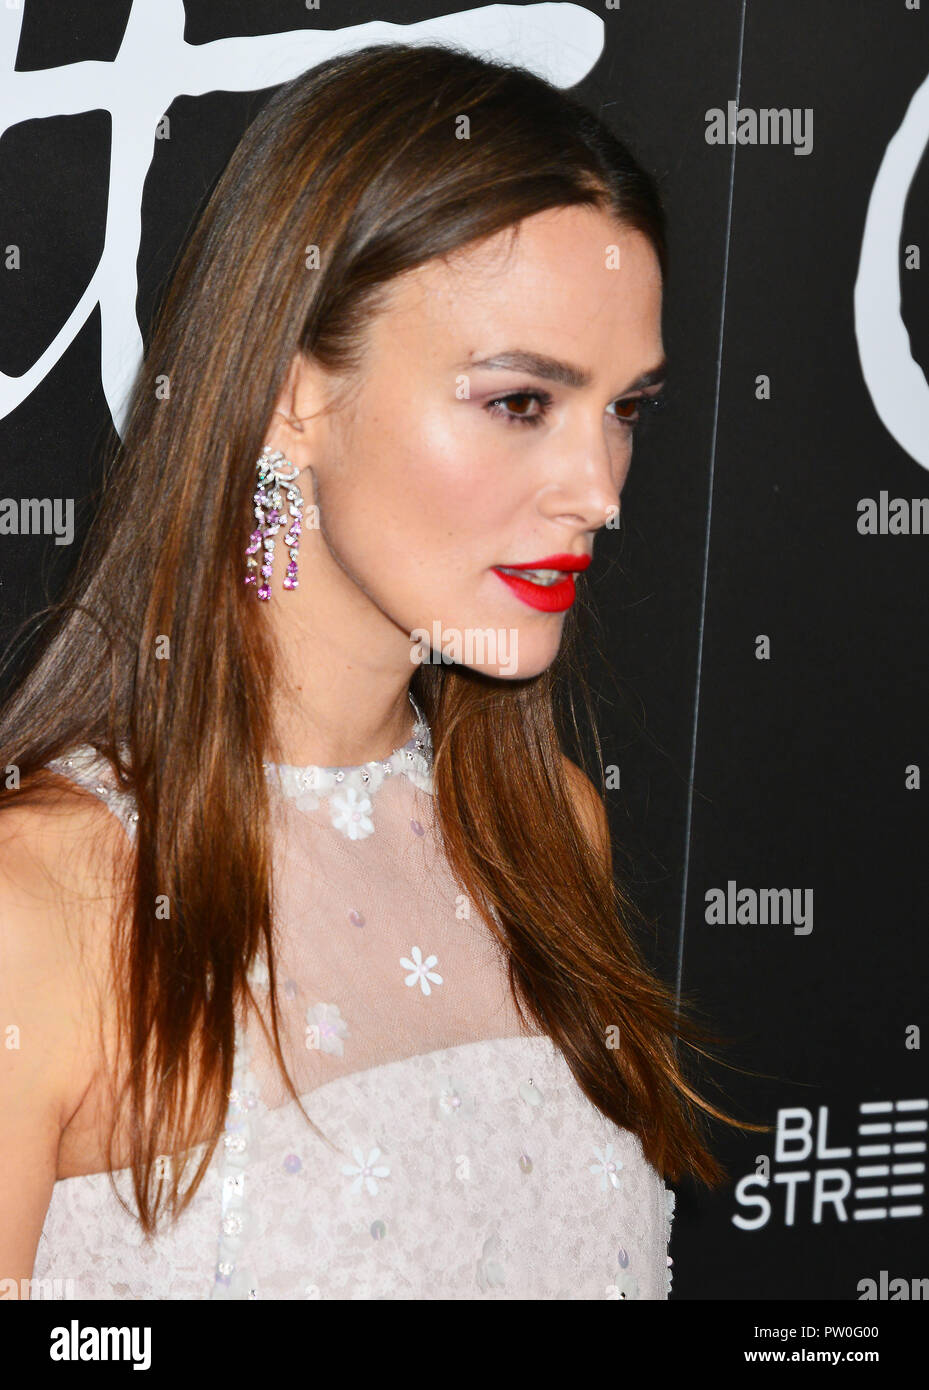 Keira Knightley 027 attends the premiere of Bleecker Street Media's 'Colette' at Samuel Goldwyn Theater on September 14, 2018 in Beverly Hills, California - Stock Image